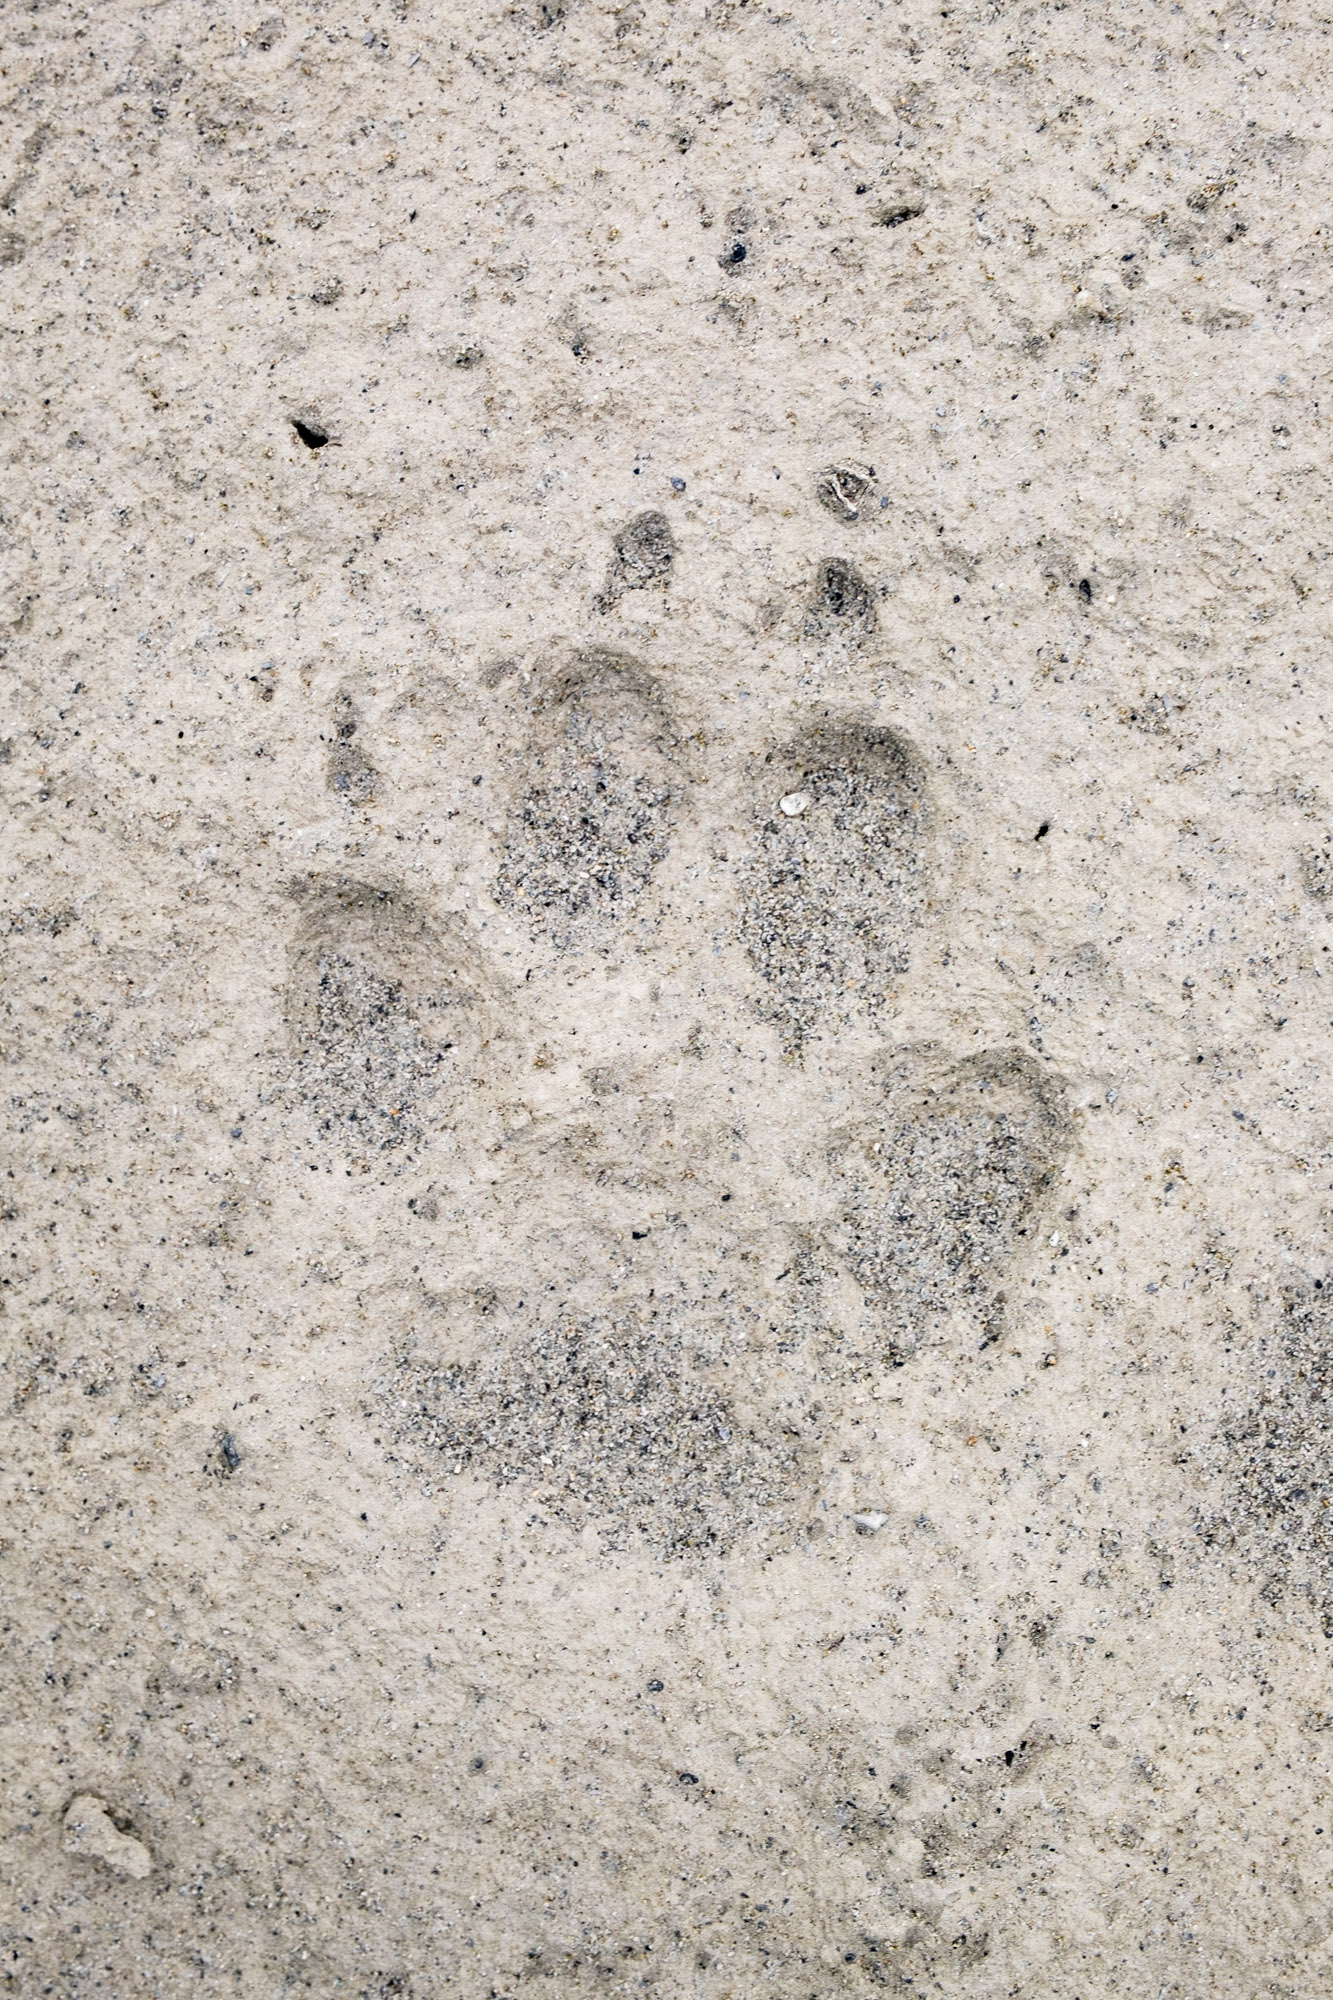 Grizzly bear tracks in Gates of the Arctic in Alaska.